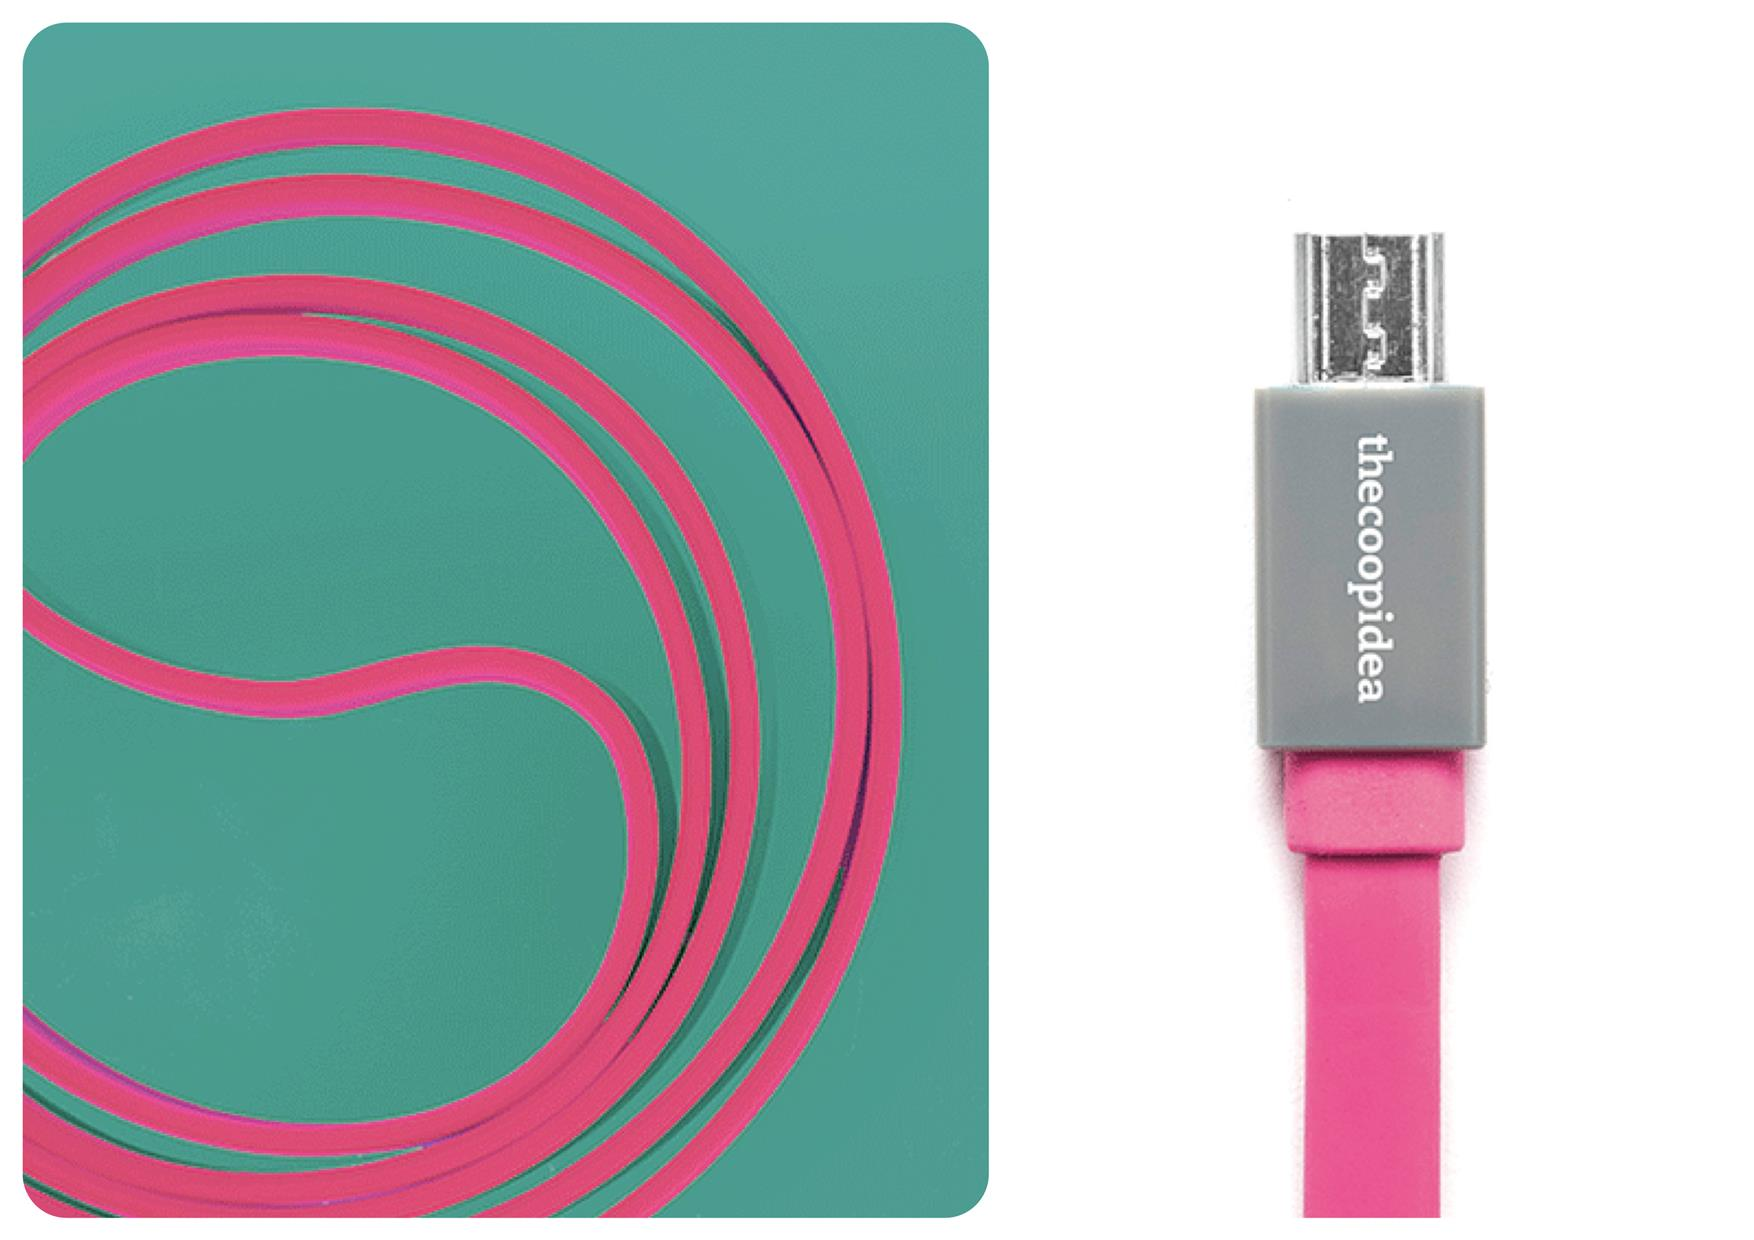 Bdotcom = TheCoopIdea Pasta Micro USB to USB Flat Cable 1m (Pink)